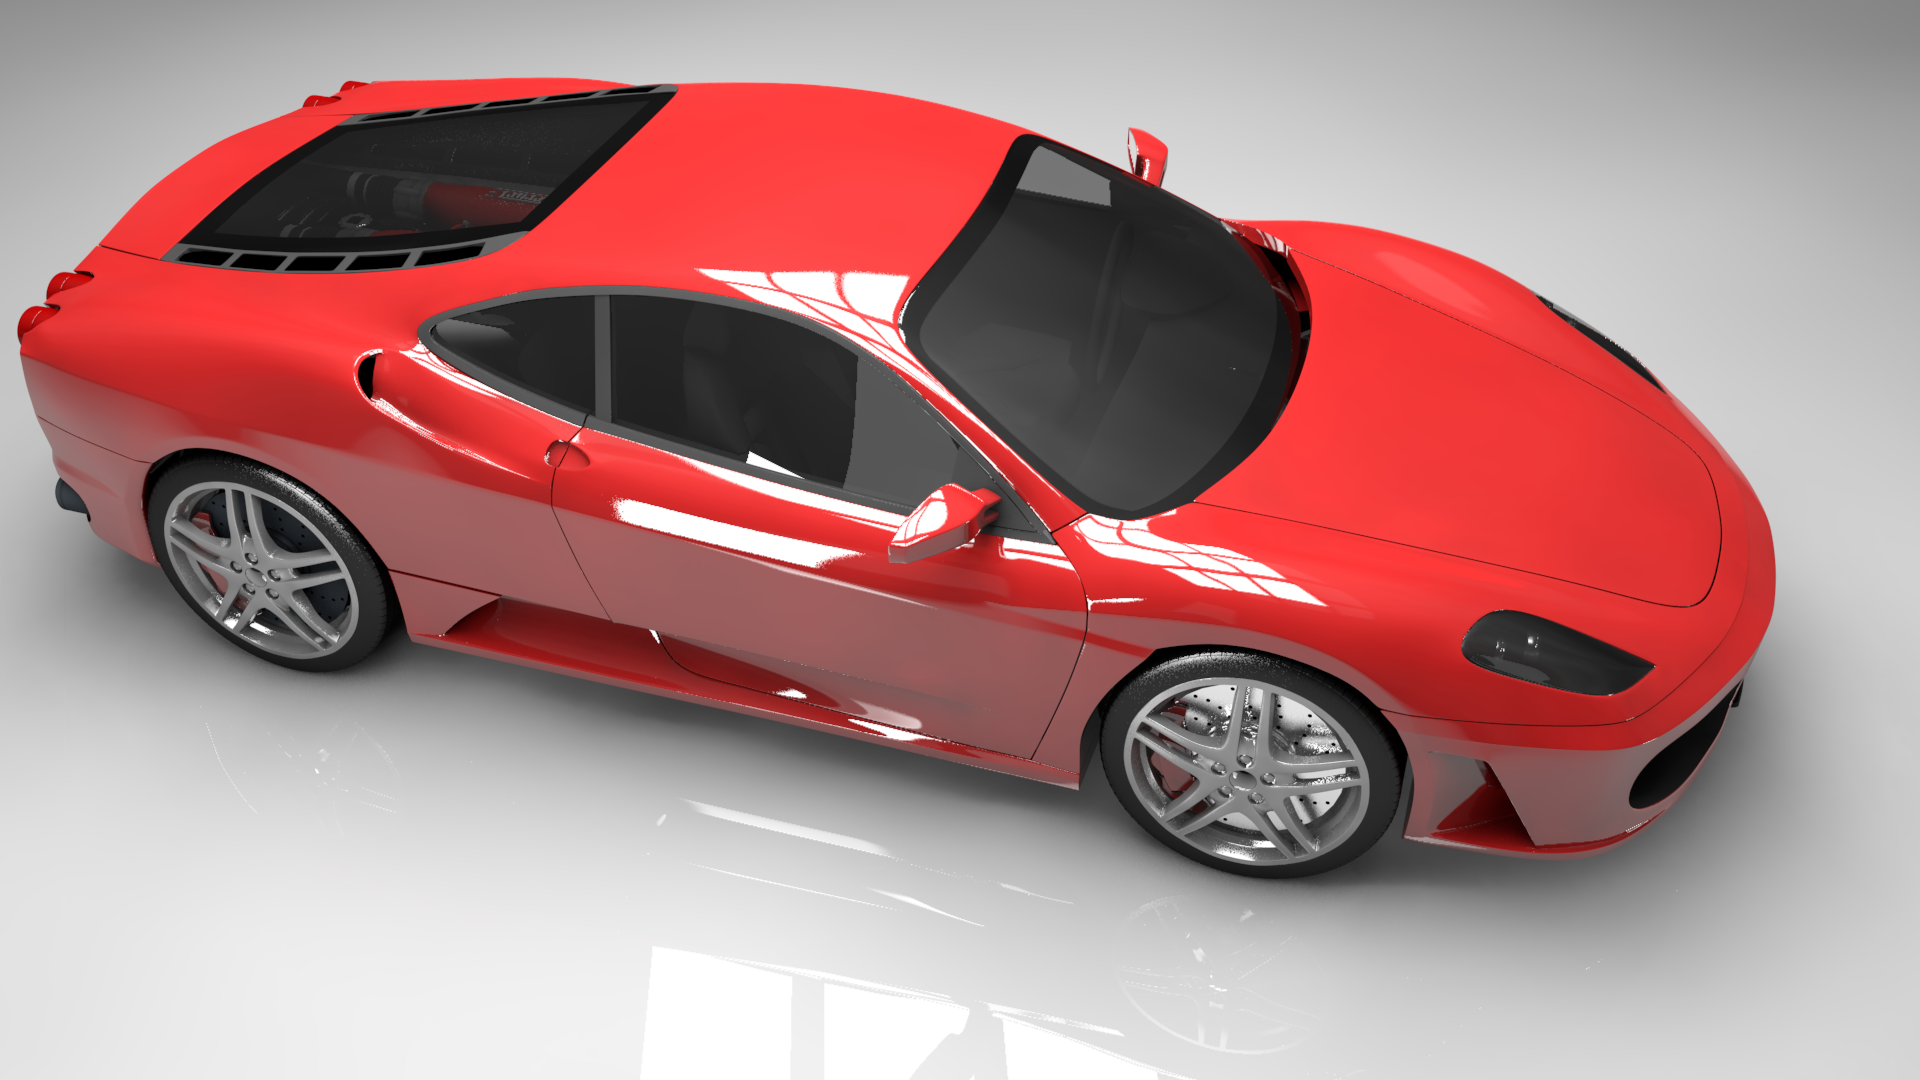 3ds Max Modeling 3d Model Game Ready Max